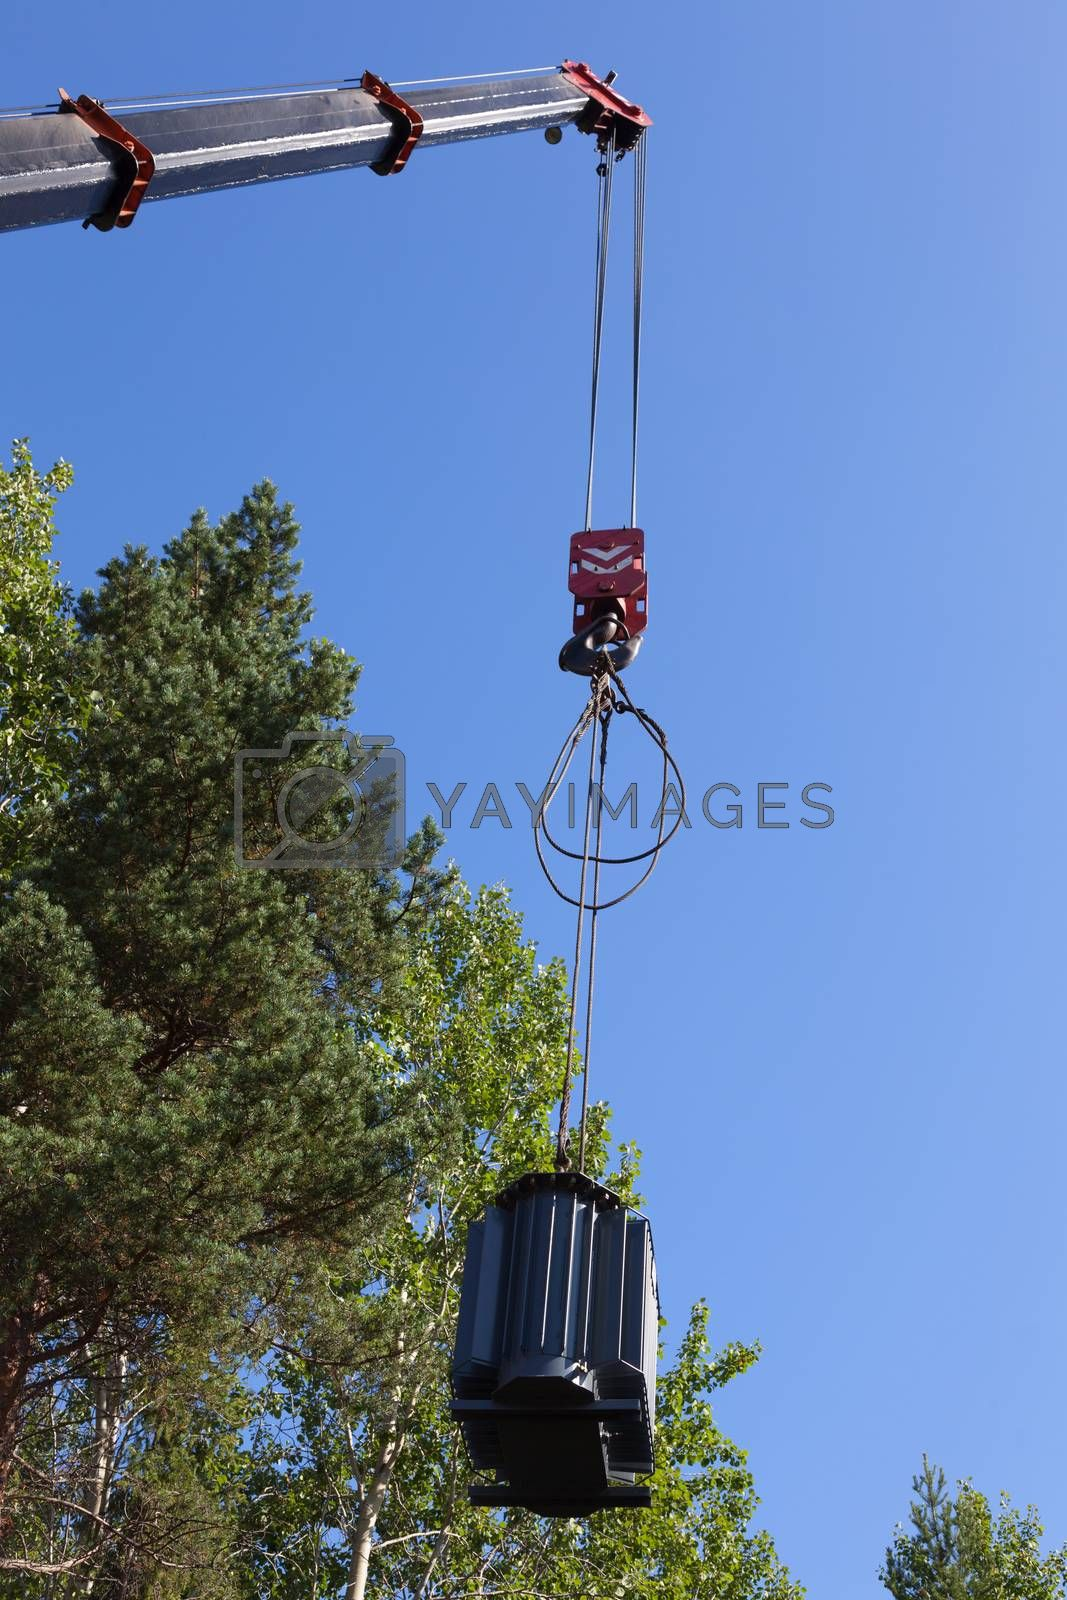 Crane hook lifts up the power transformer against the green forest